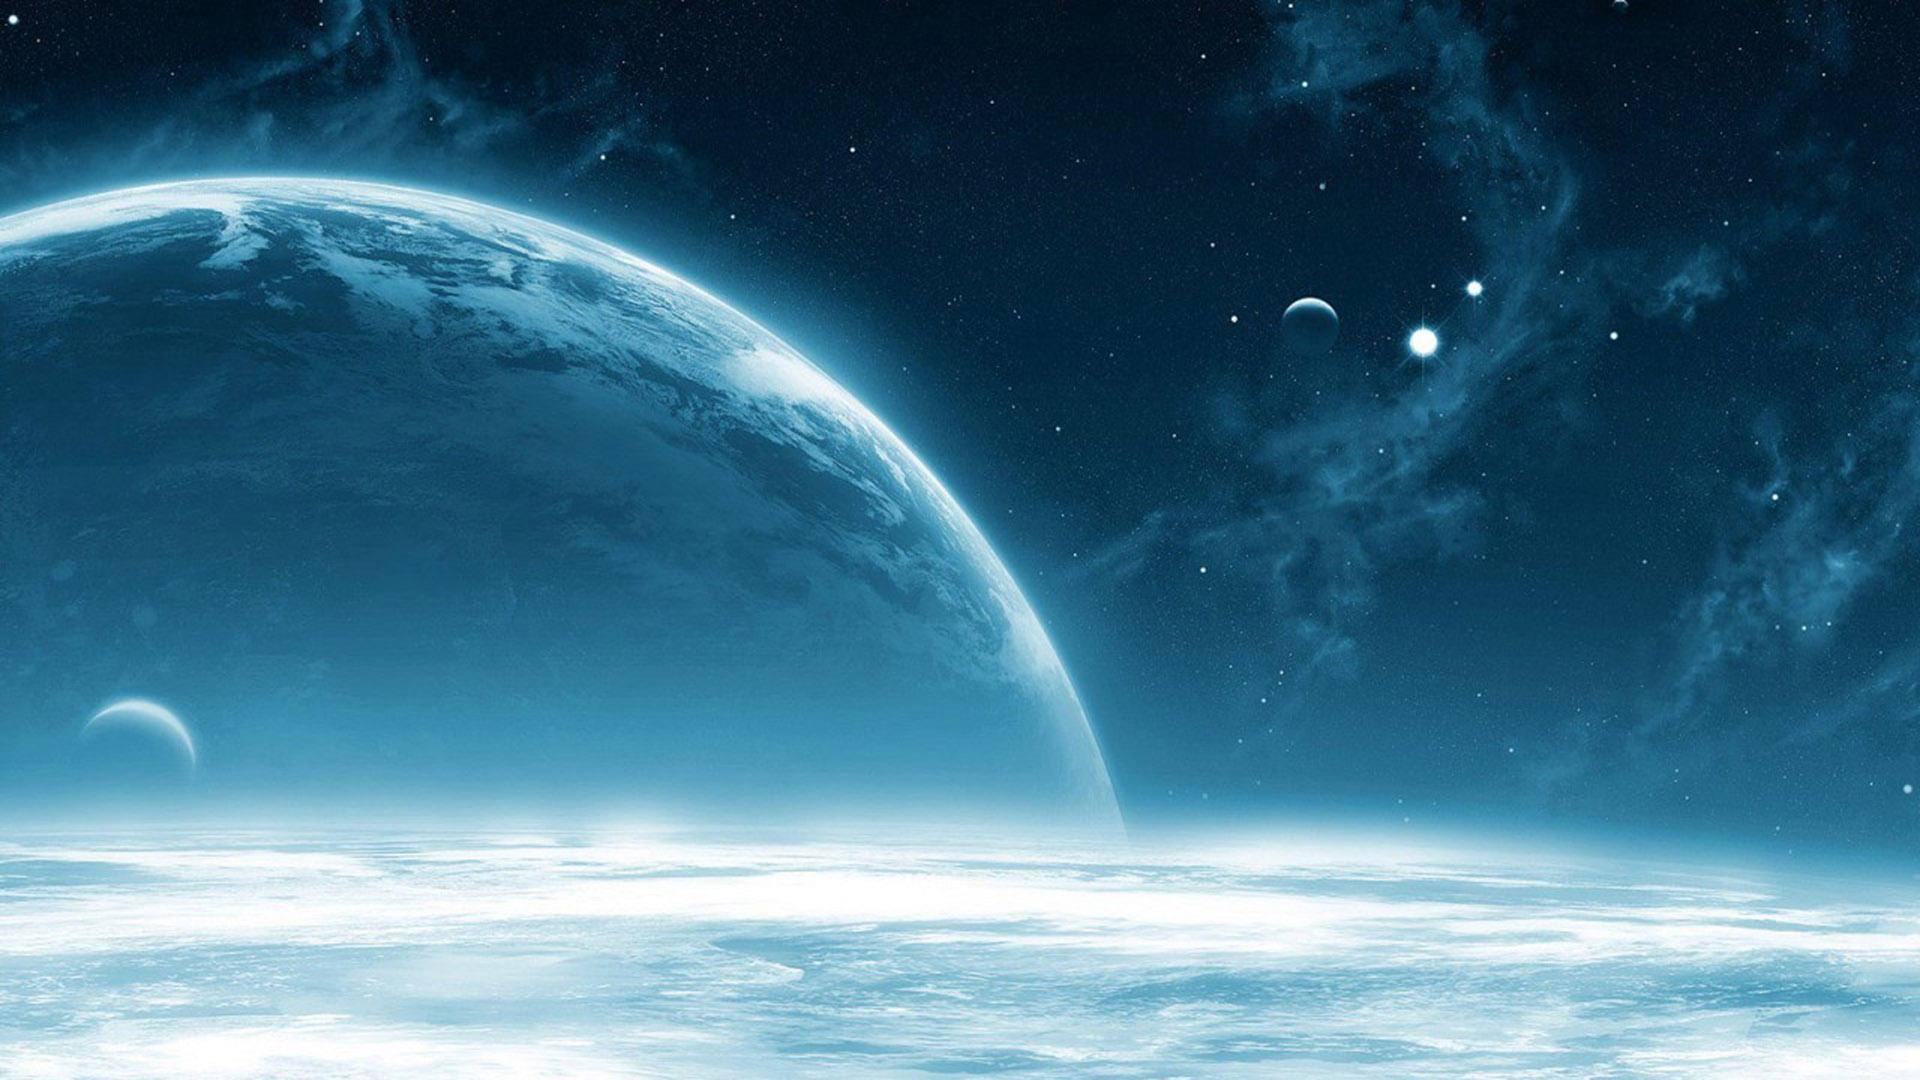 wallpaper.wiki-hd-space-universe-widescreen-wallpapers-hdwalljoy-pic